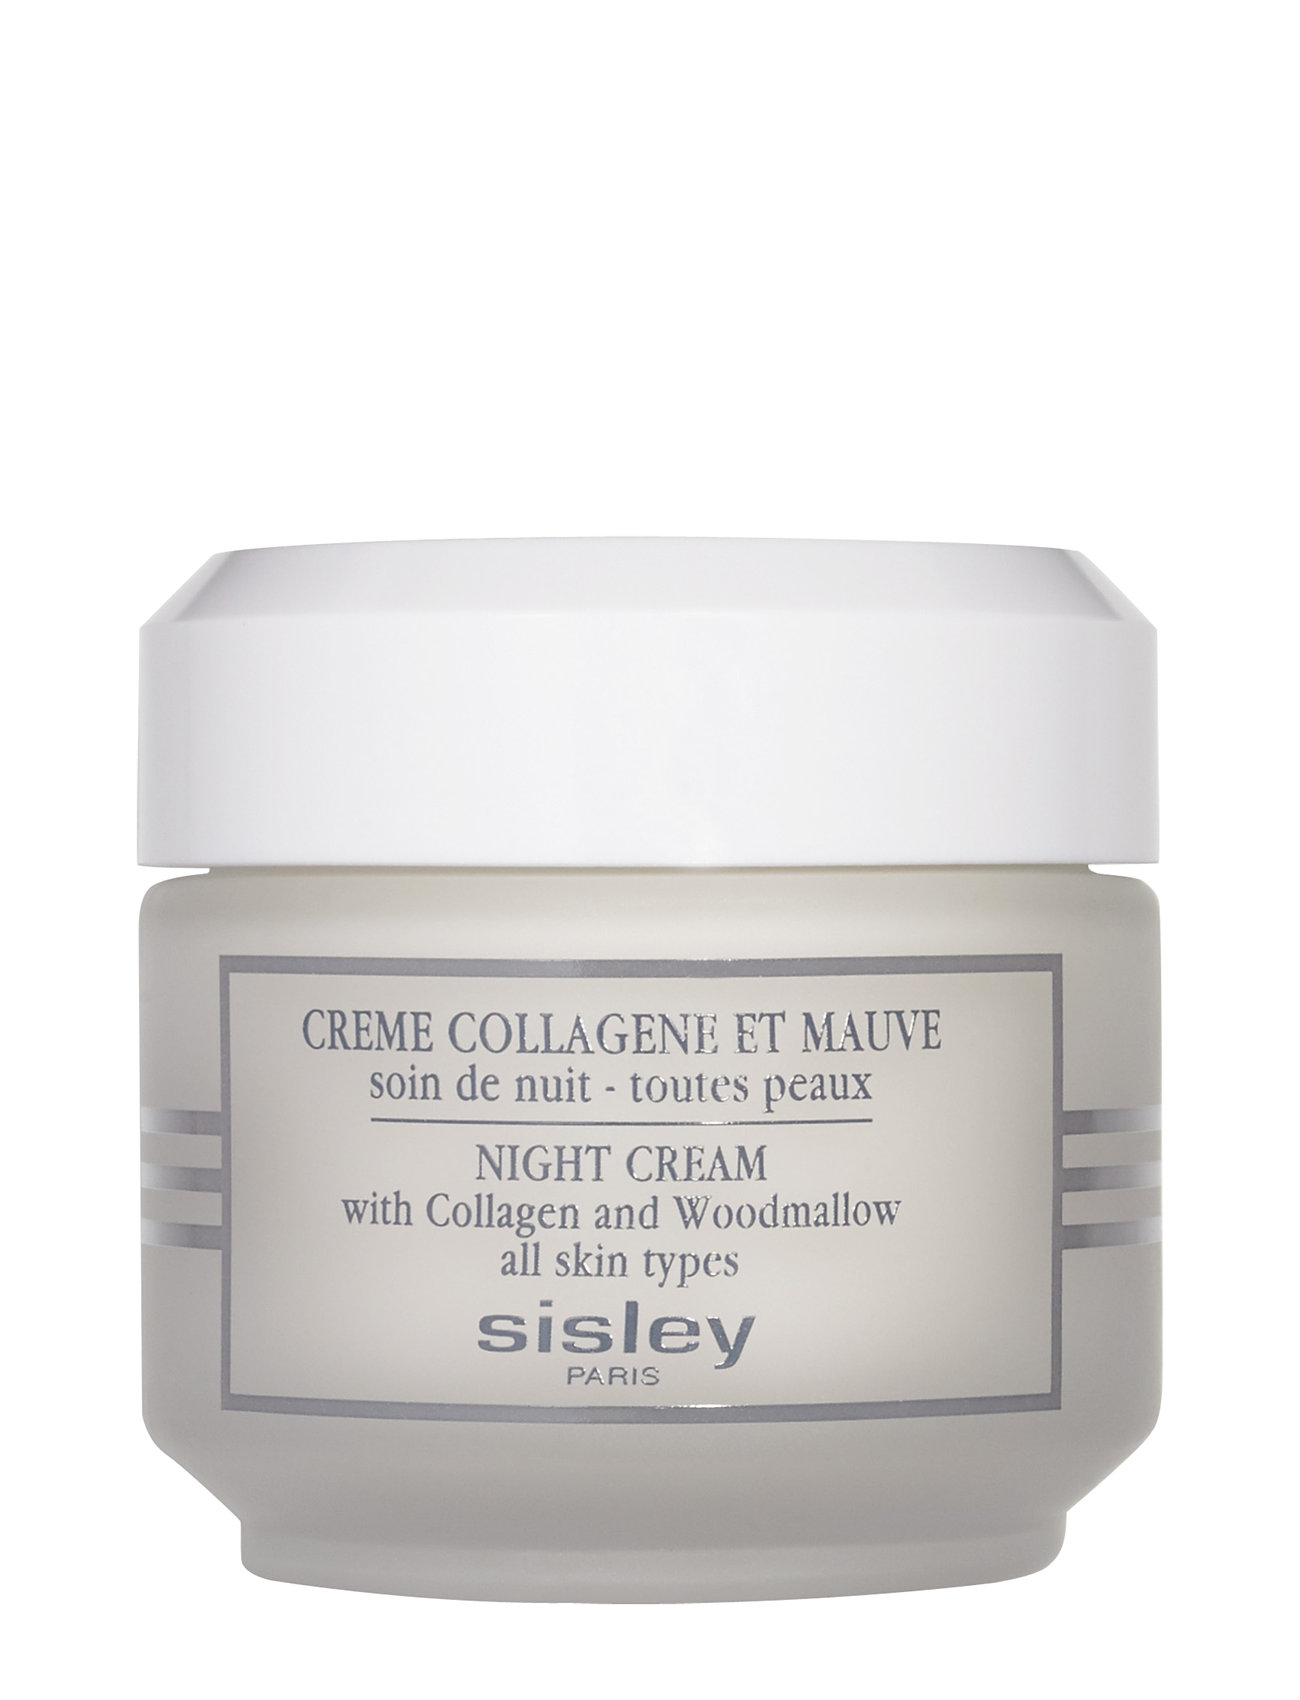 Sisley NIGHT CREAM COLLAGEN AND WOODMALLOW 50ml - CLEAR